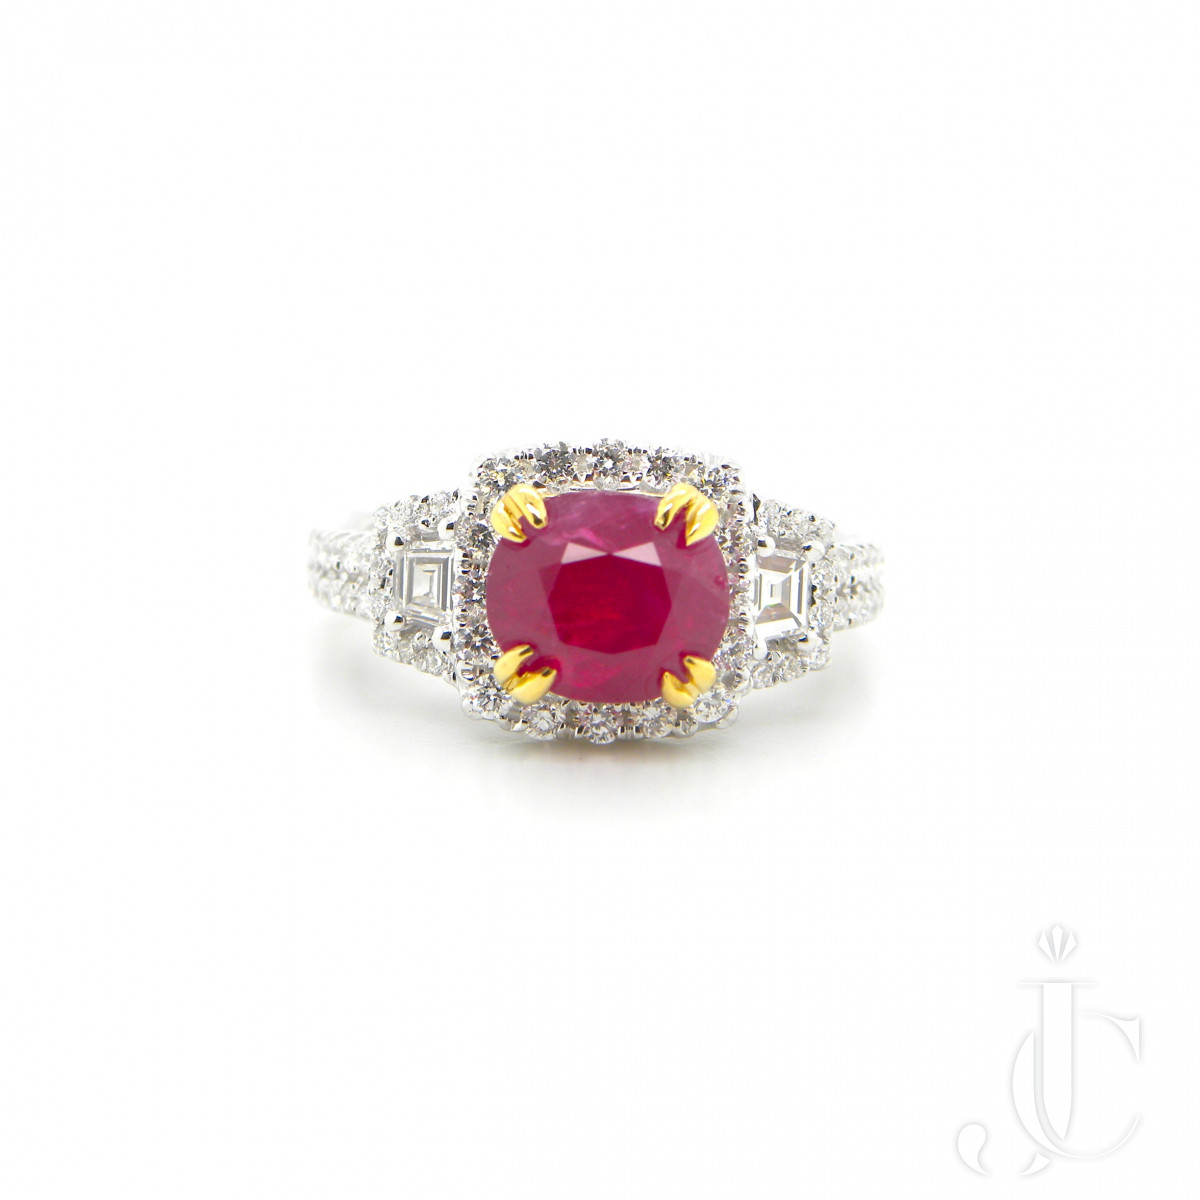 2.11 Carat GIA Certified Unheated Vivid Red Burmese Ruby and Diamond Ring